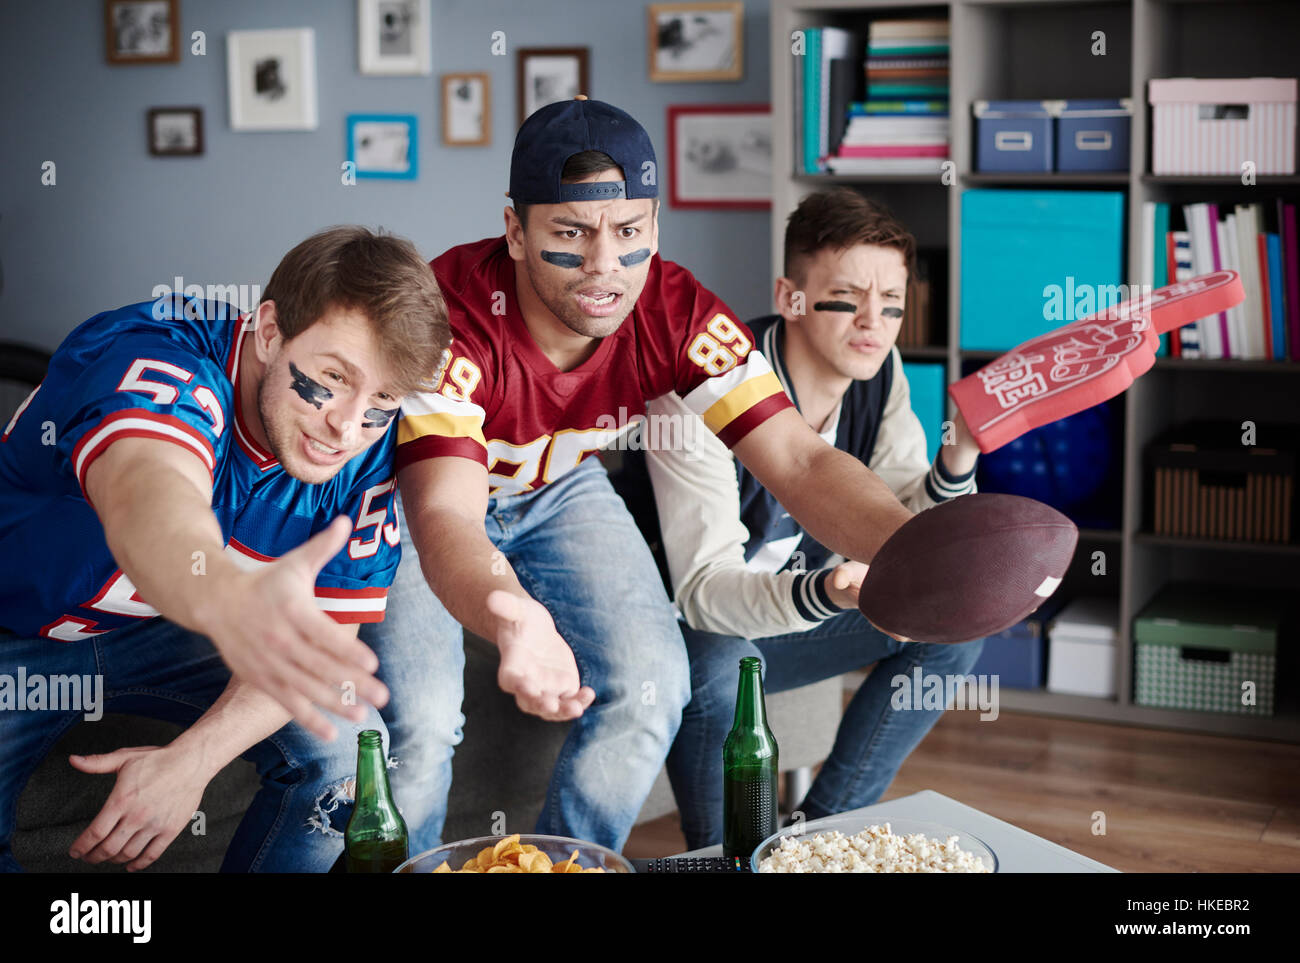 Unhappy men while watching American football - Stock Image